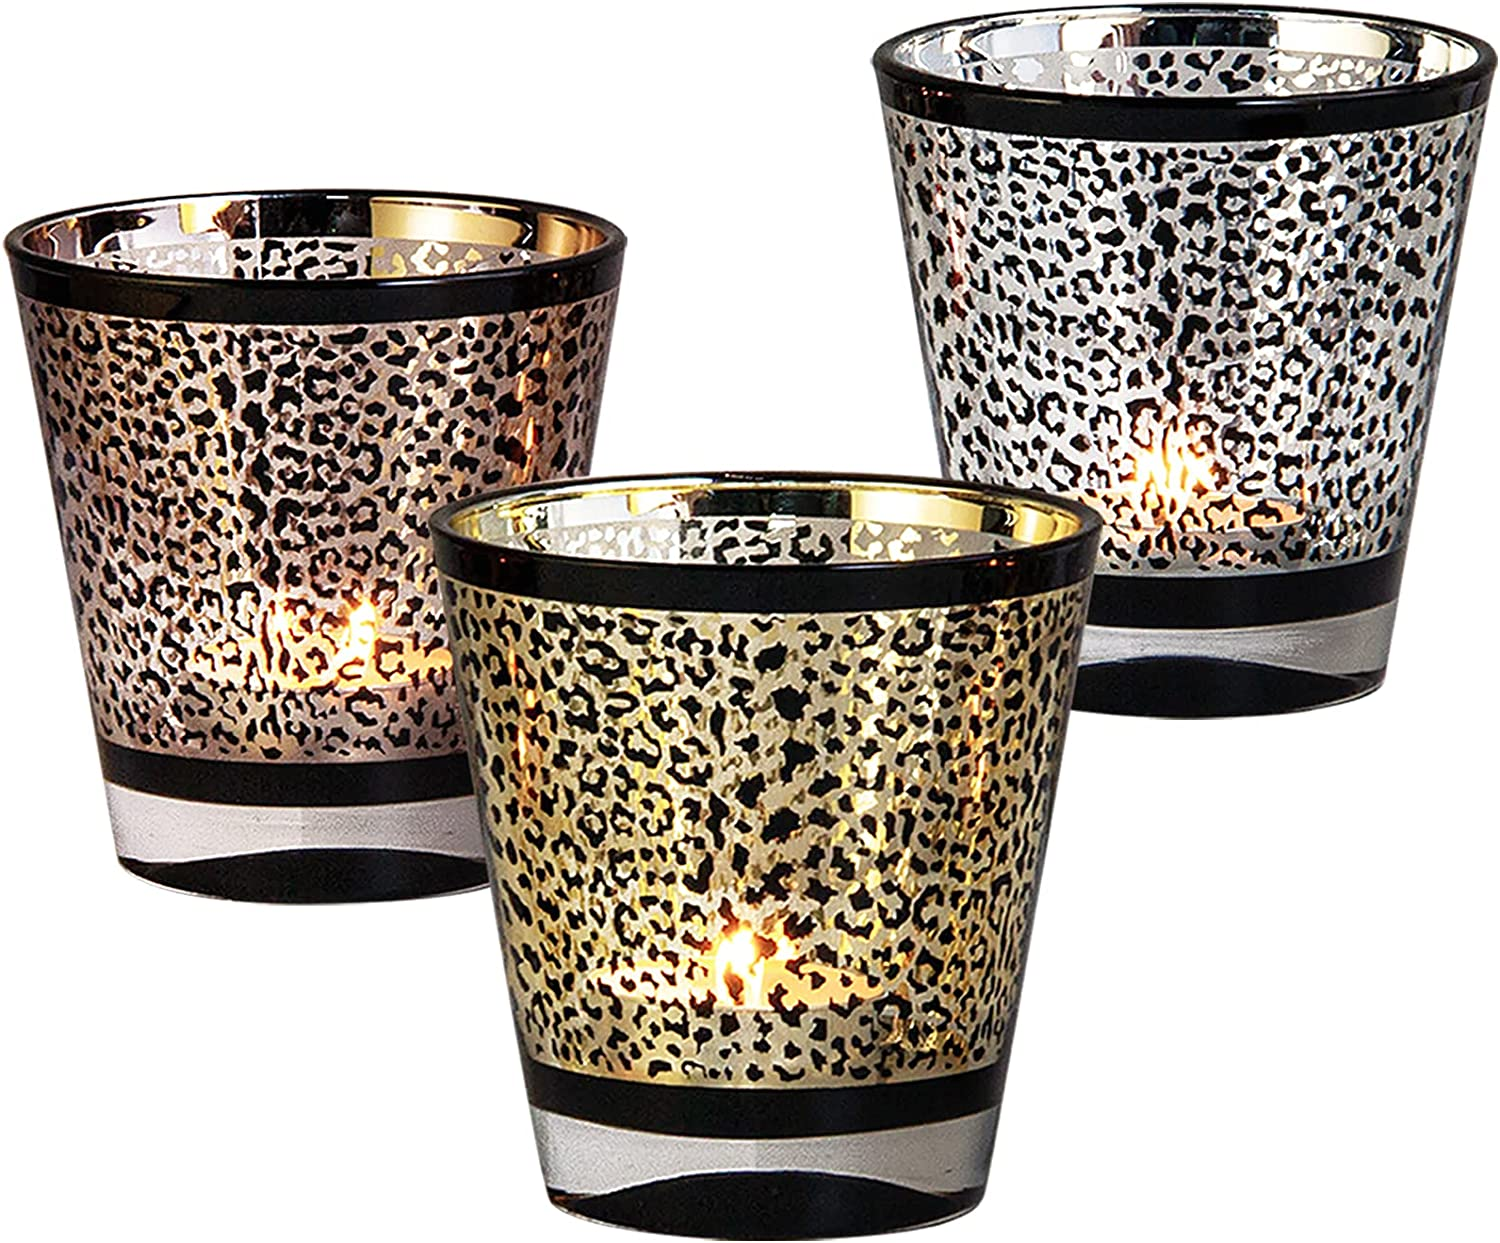 Set of 3 Animal- Leopard Print Votive Candle Holders, Decorative Tealight Holders 3.5 inches/9cm High, Mercury Glass in 3 Color Assorted,Great for Wild Home Decoration Party Tabletop Centerpiece Gift